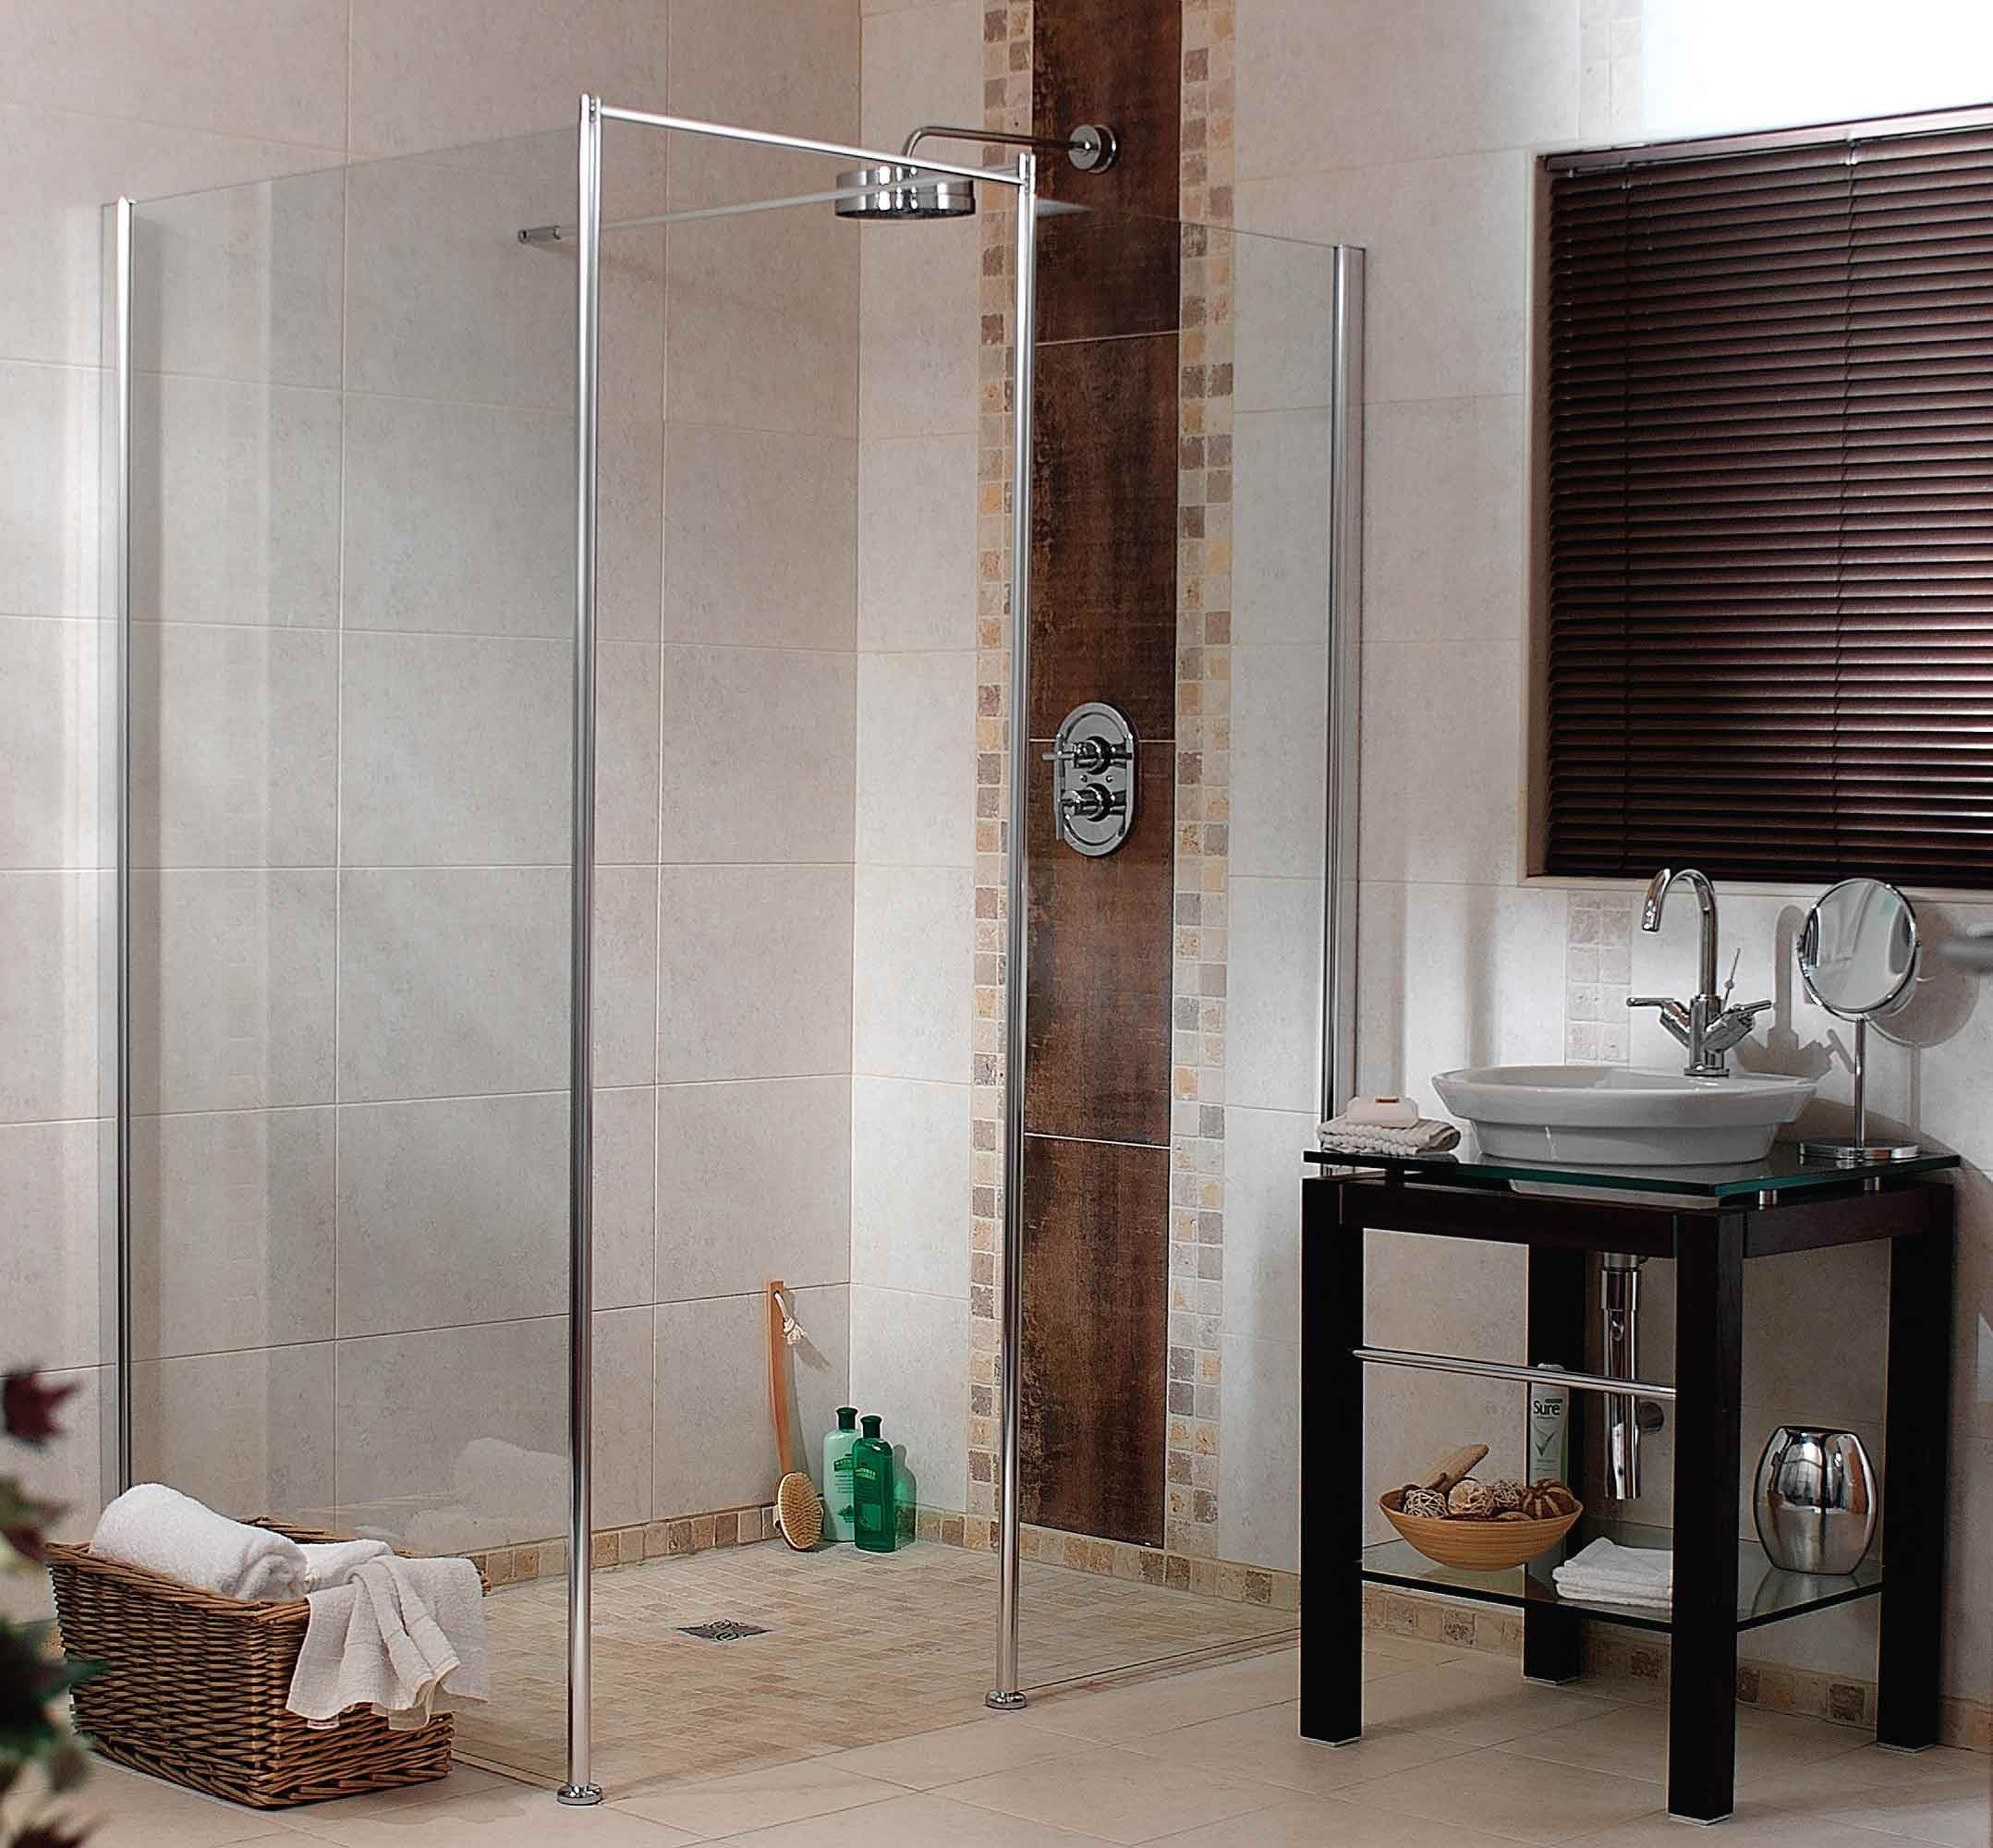 This luxury HSK corner entry shower with twin doors and wetroom ...